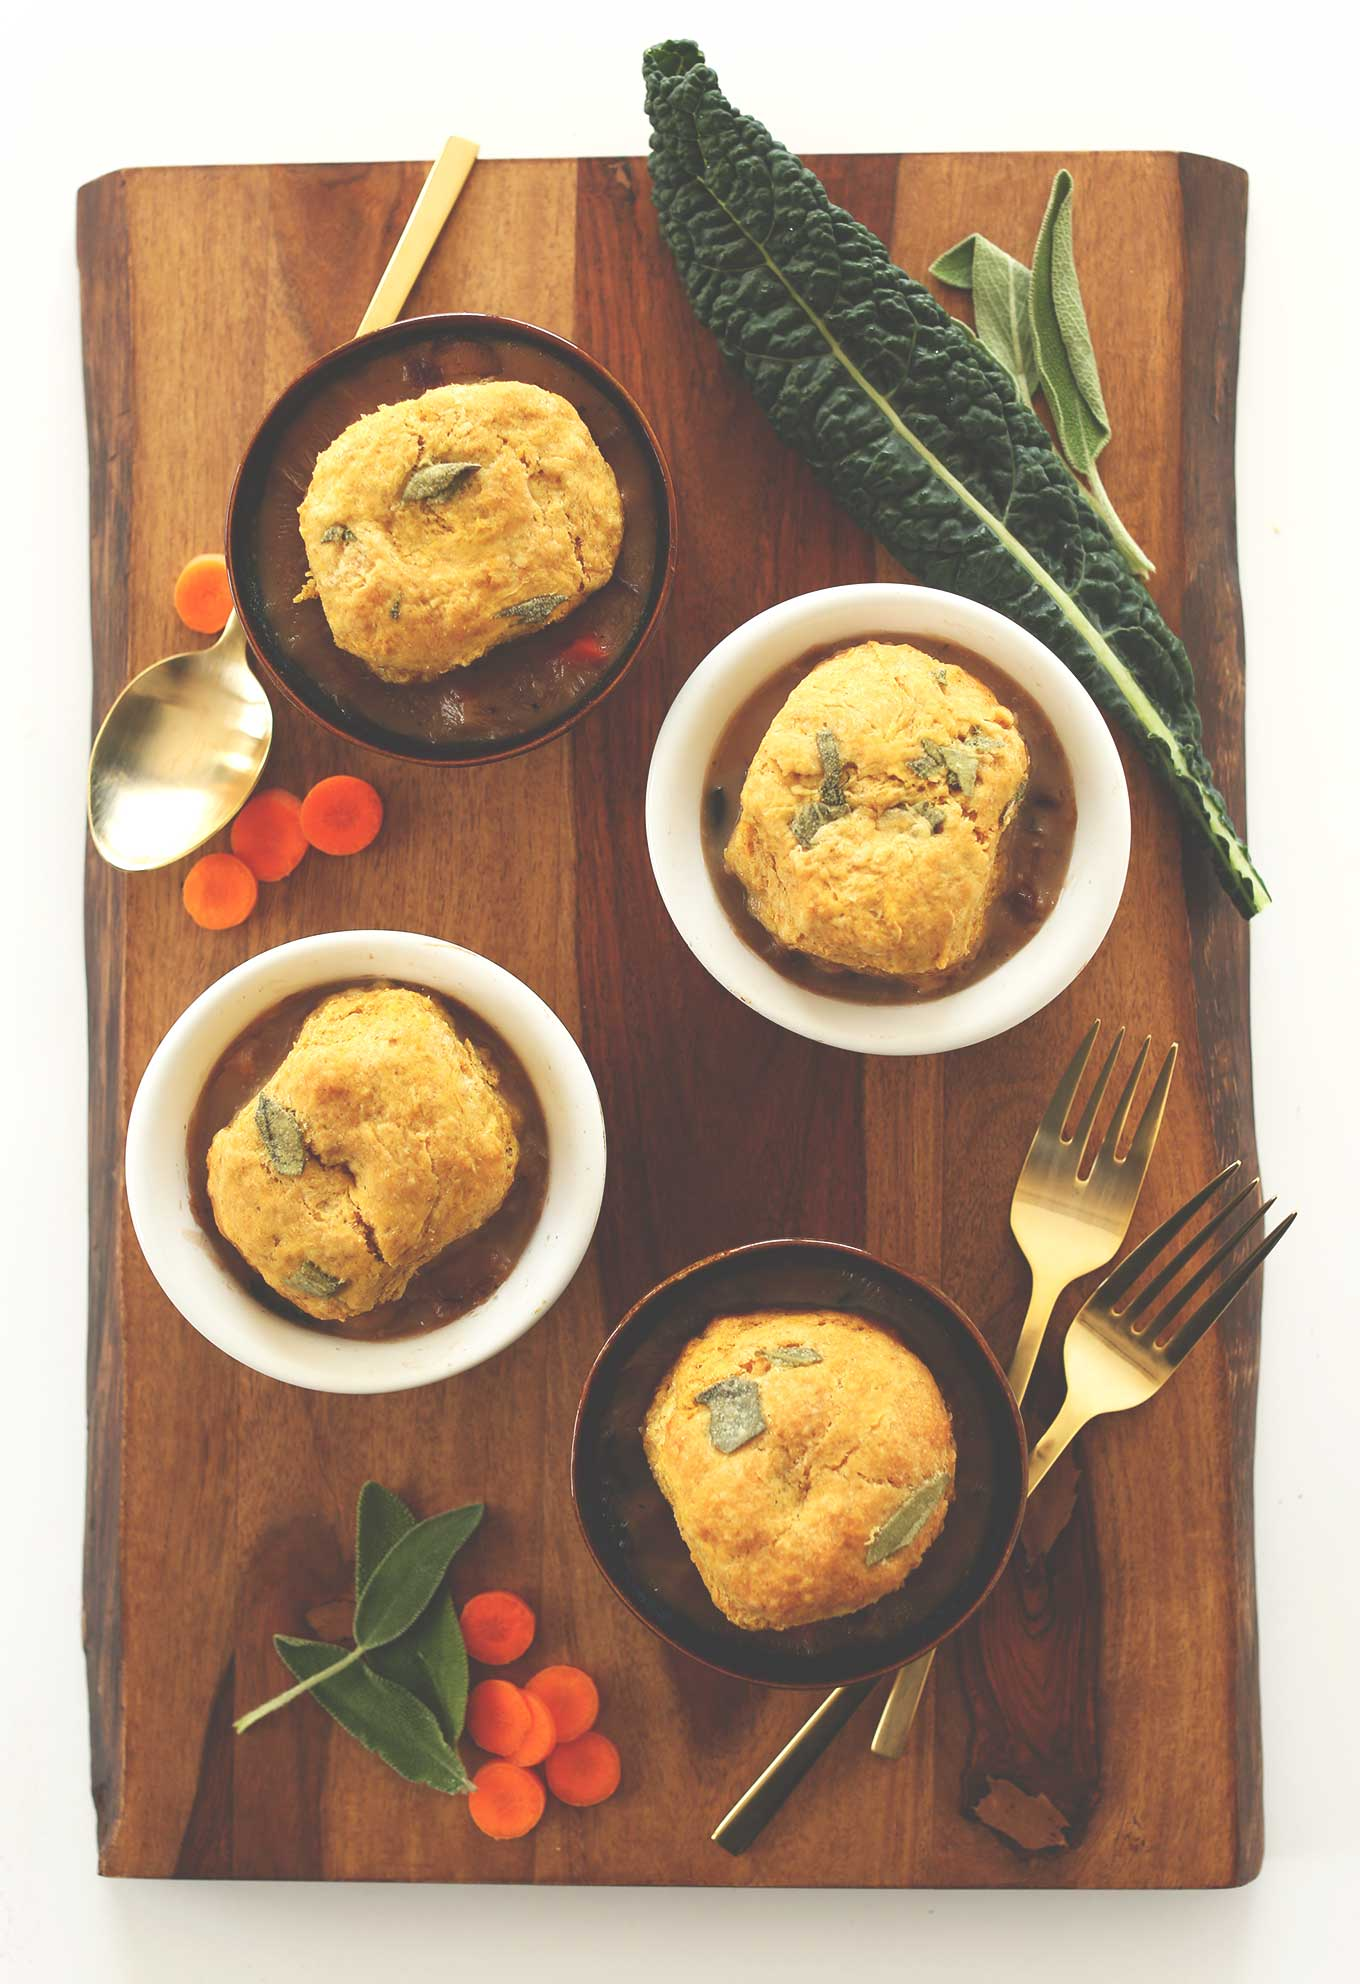 Small bowls of our Vegan Fall Pot Pies topped with Pumpkin Sage Biscuits